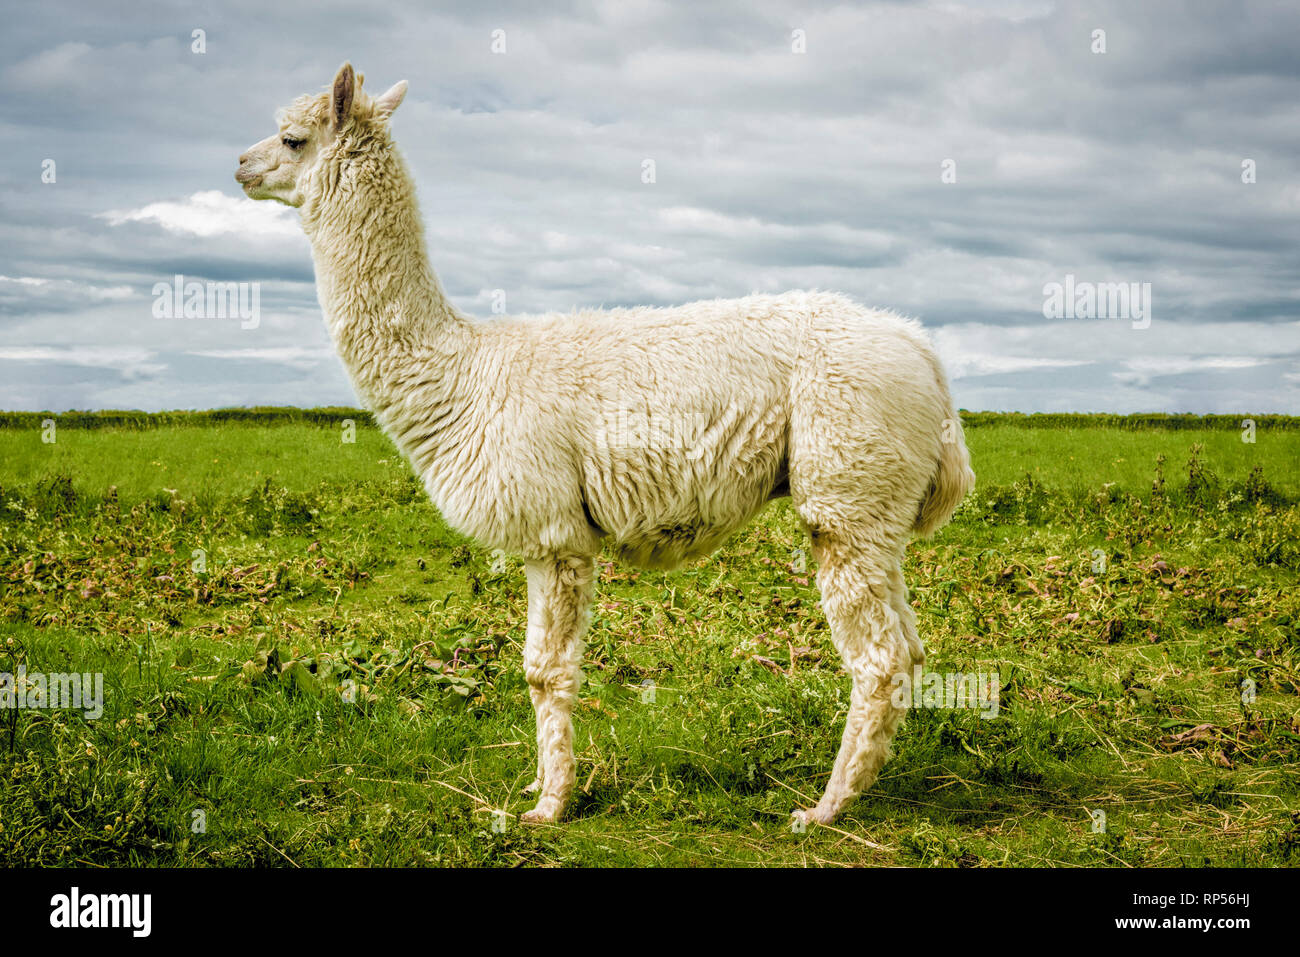 Alpaca (Vicugna pacos) - a species of South American camelid. Stock Photo